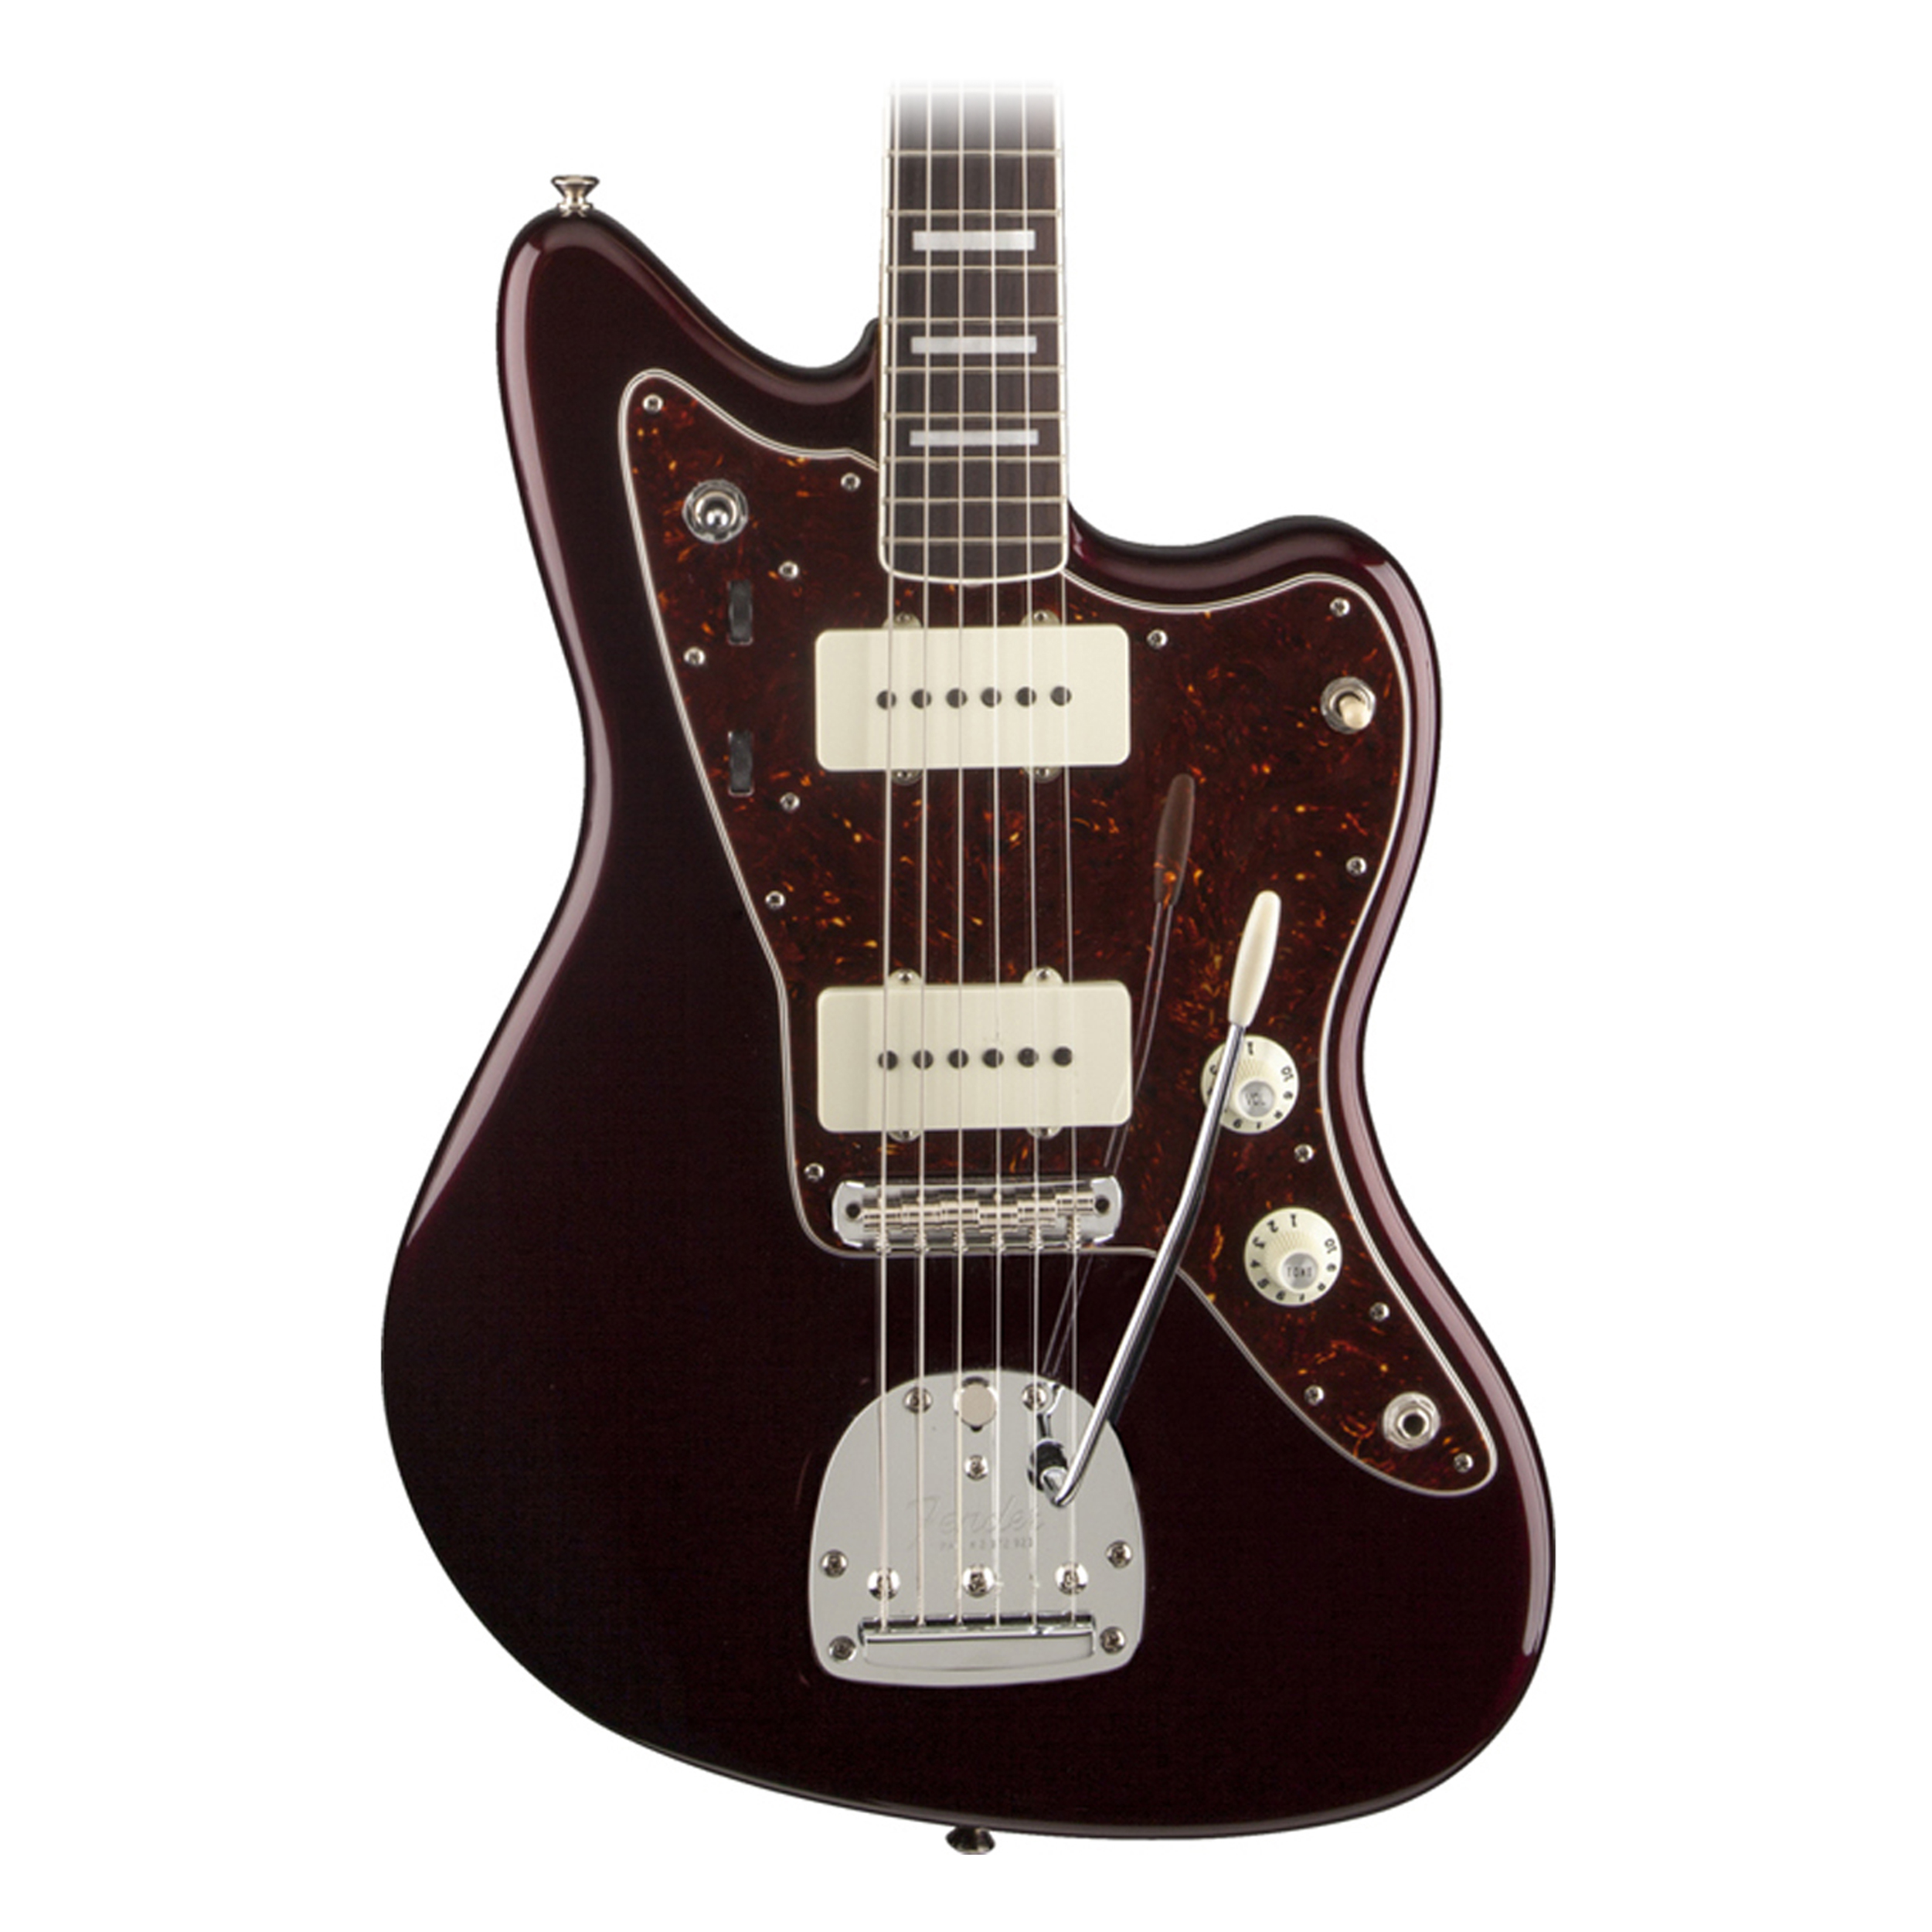 fender troy van leeuwan jazzmaster electric guitar in oxblood finish with case ebay. Black Bedroom Furniture Sets. Home Design Ideas